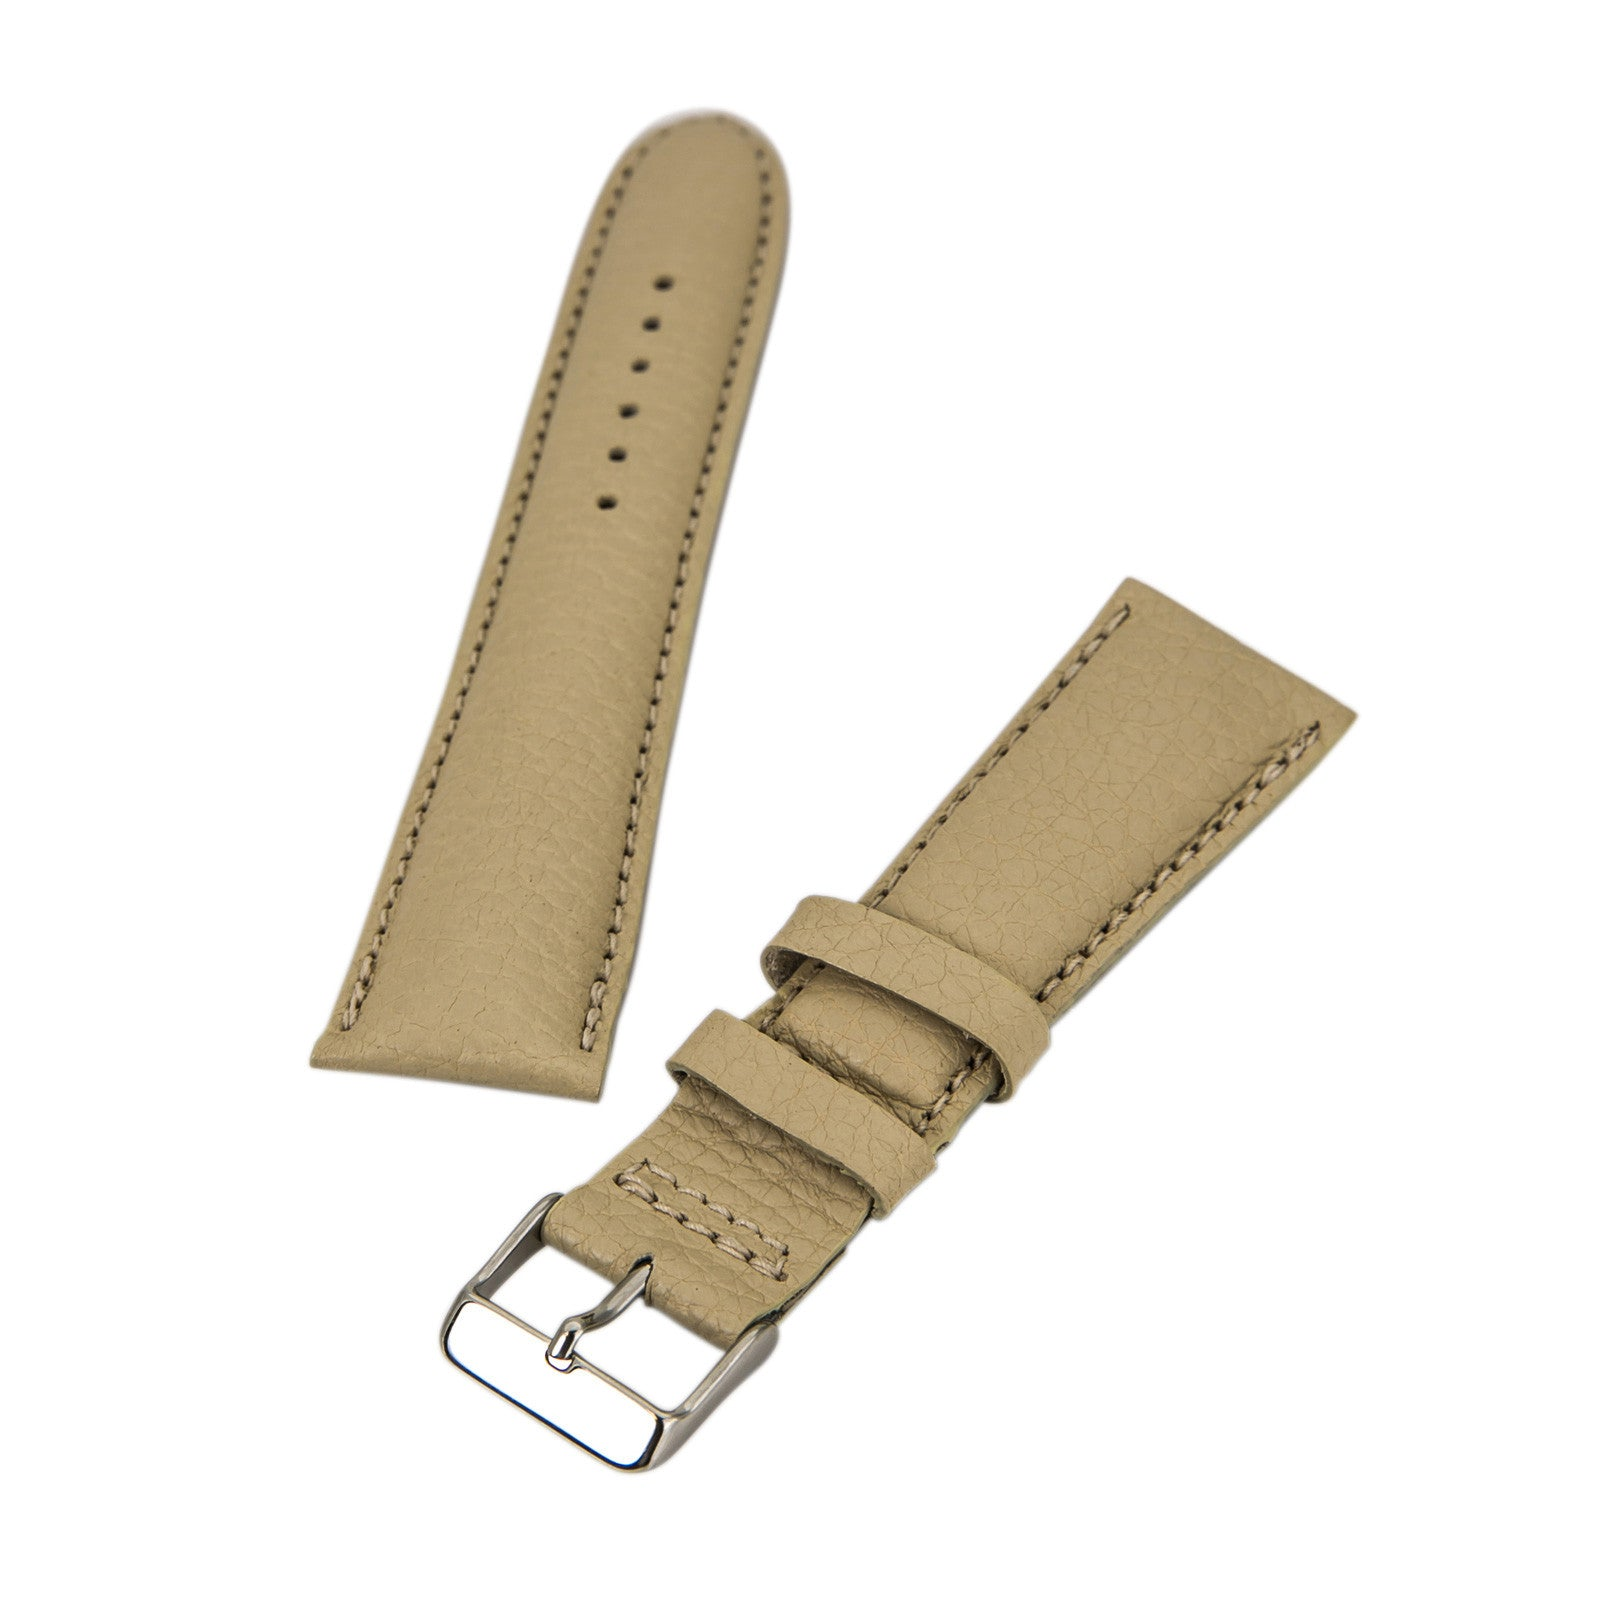 Brentwood Tan 24 mm Genuine Calf Leather